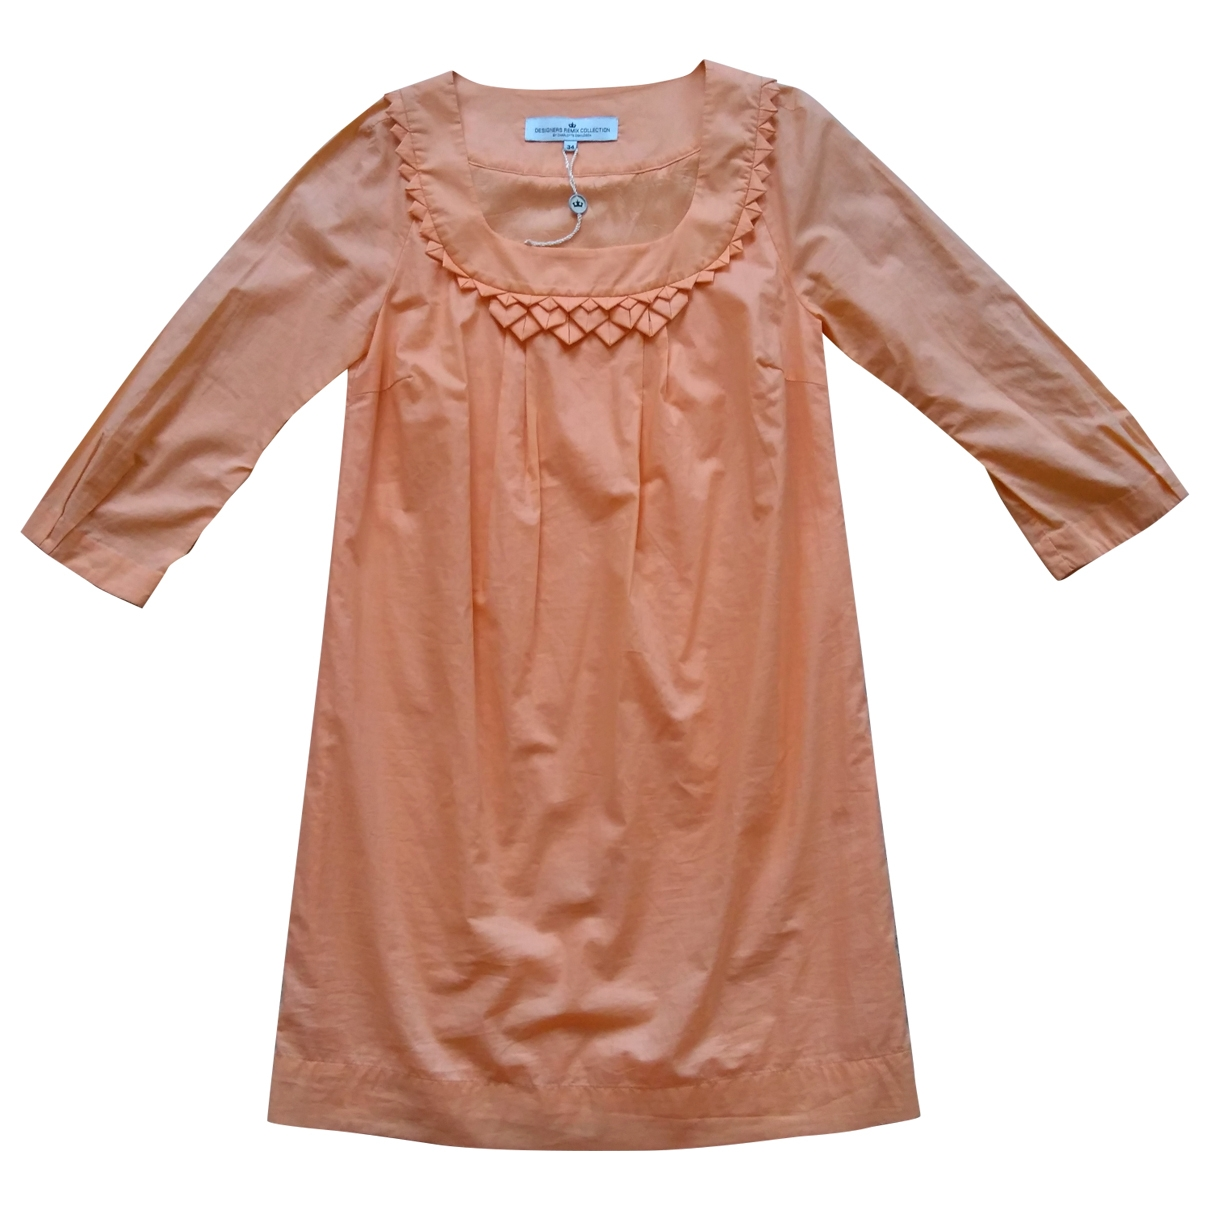 Designers Remix \N Orange Cotton dress for Women 34 FR